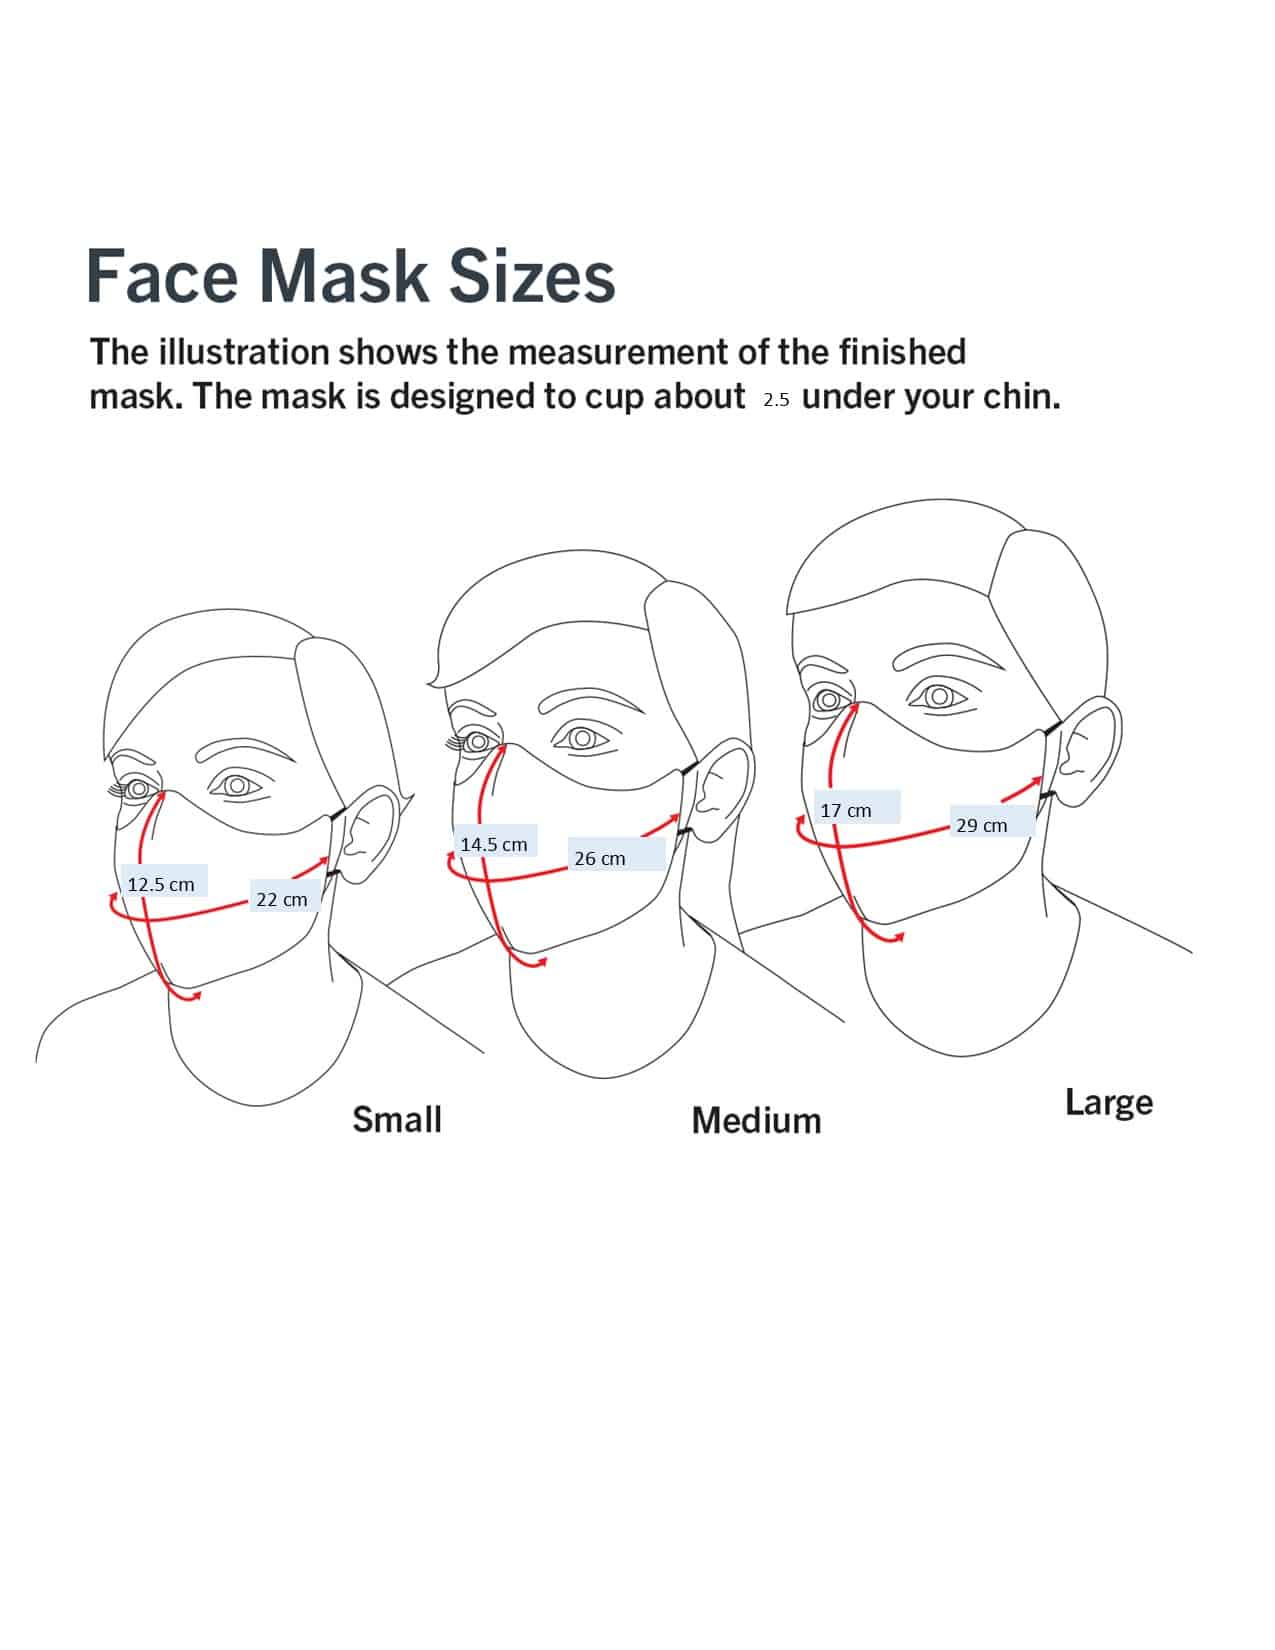 Triple Layer Water Resistant Reusable Face Mask Made in Australia by Bungalow Living Face Mask Sizes